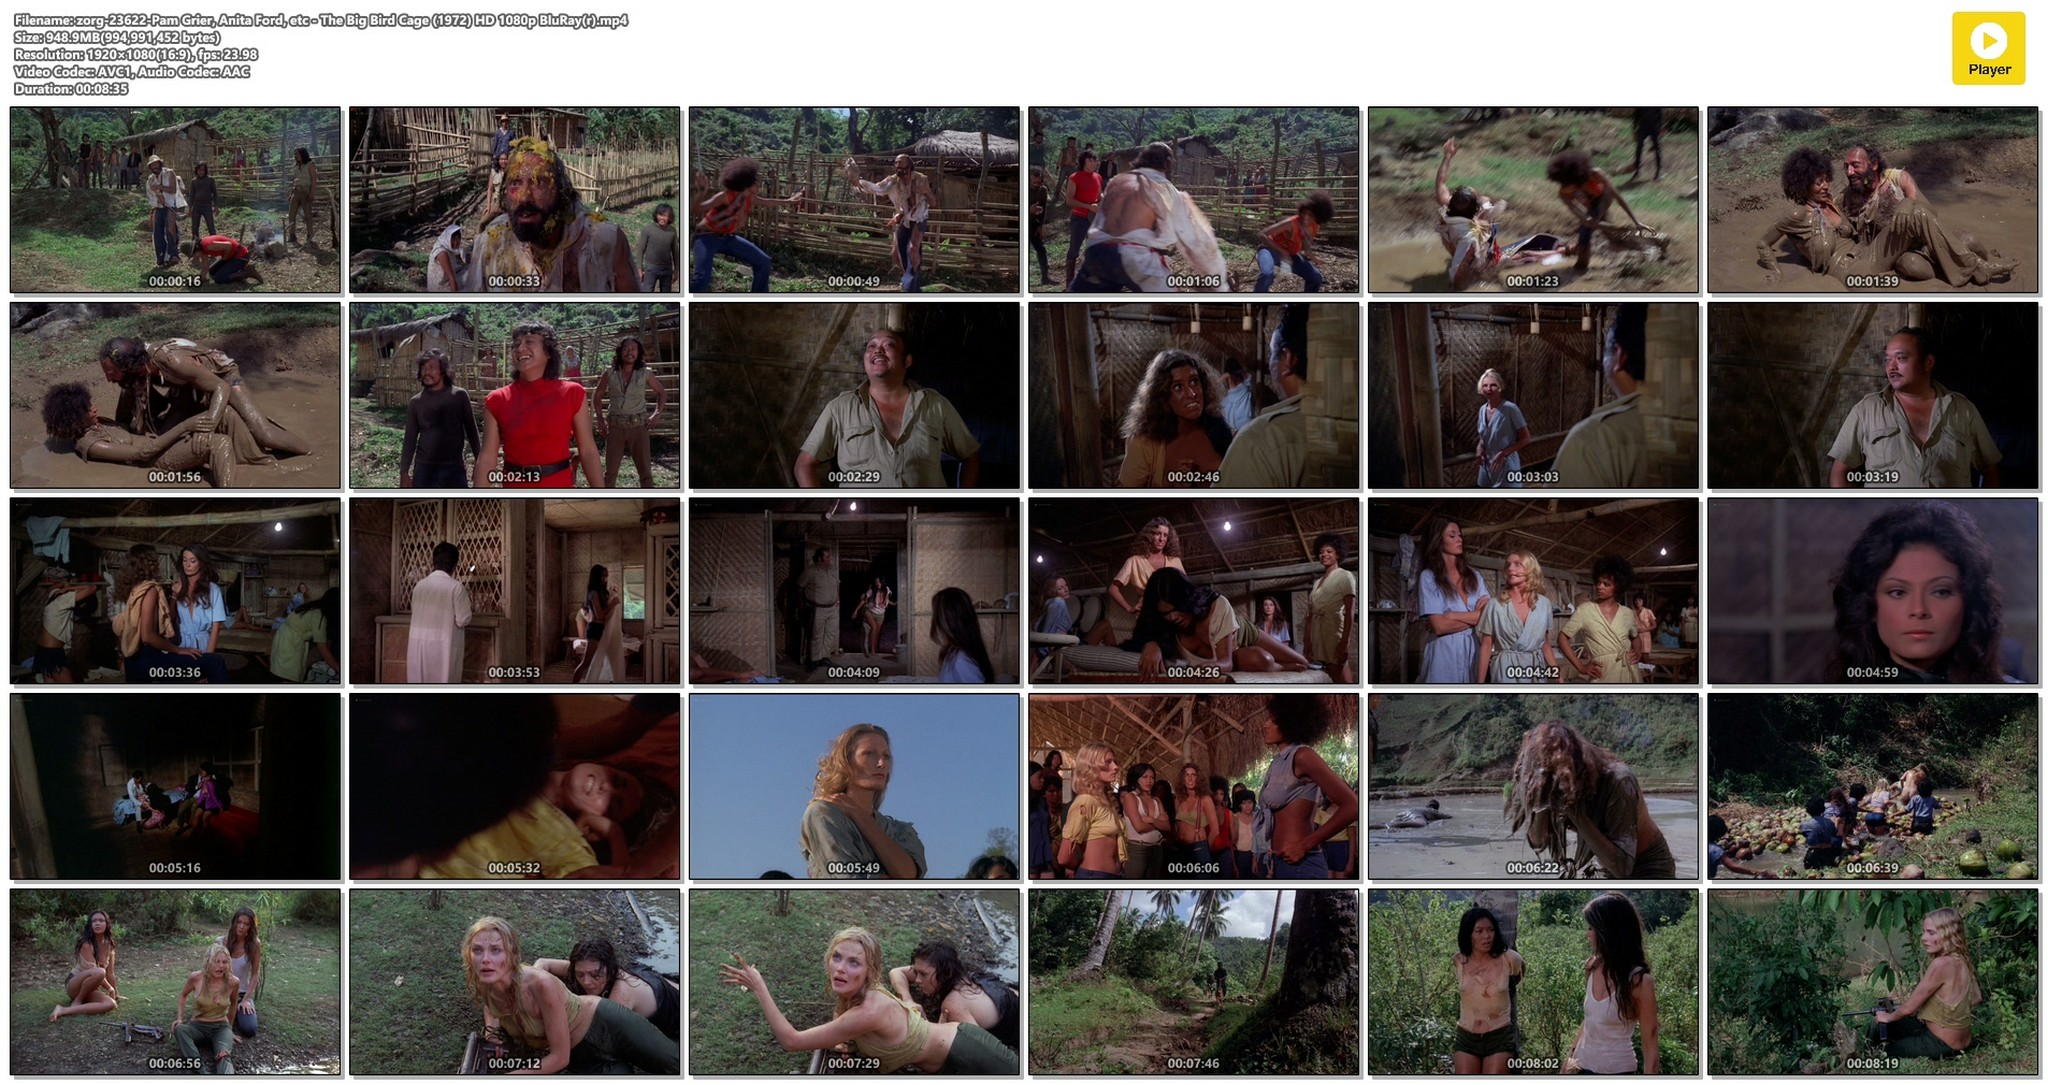 Pam Grier nude Anita Ford nude bush, others nude - The Big Bird Cage (1972) HD 1080p BluRay(r) (1)